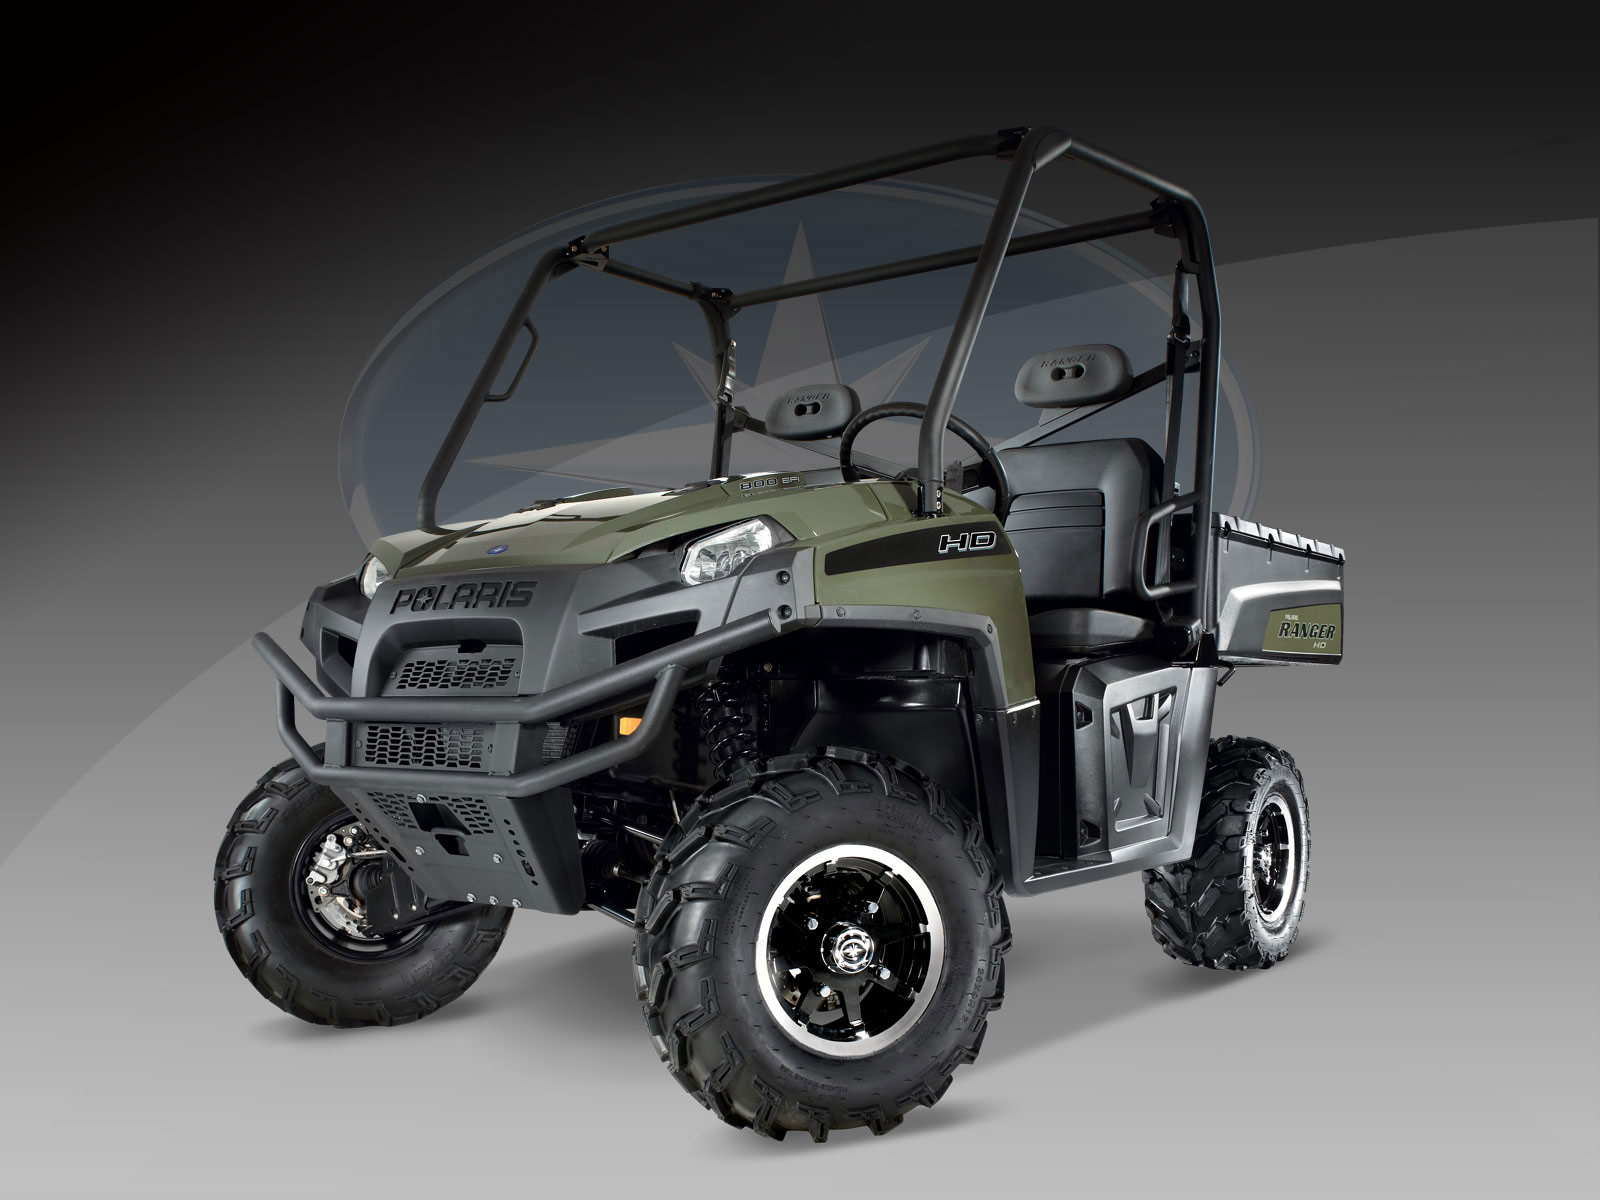 http://4.bp.blogspot.com/-uG-vZH57fT4/TulvHyzBHLI/AAAAAAAAKvs/l_V-MoaW348/s1600/2010-Polaris-Ranger-800-HD-ATV-wallpapers-2.jpg